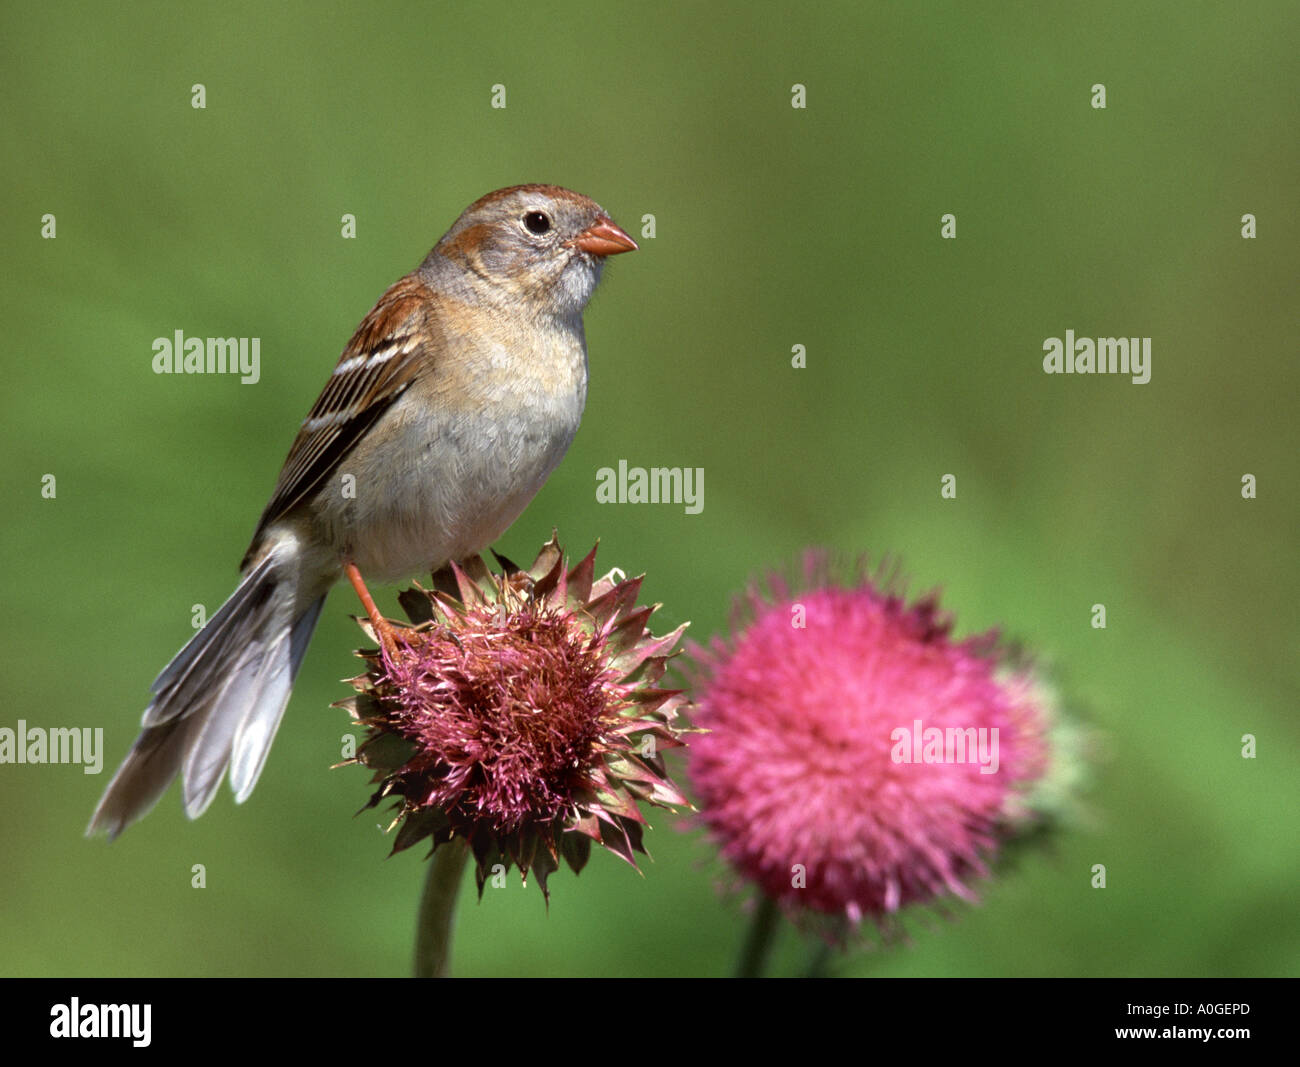 Field Sparrow on Bull Thistle - Stock Image